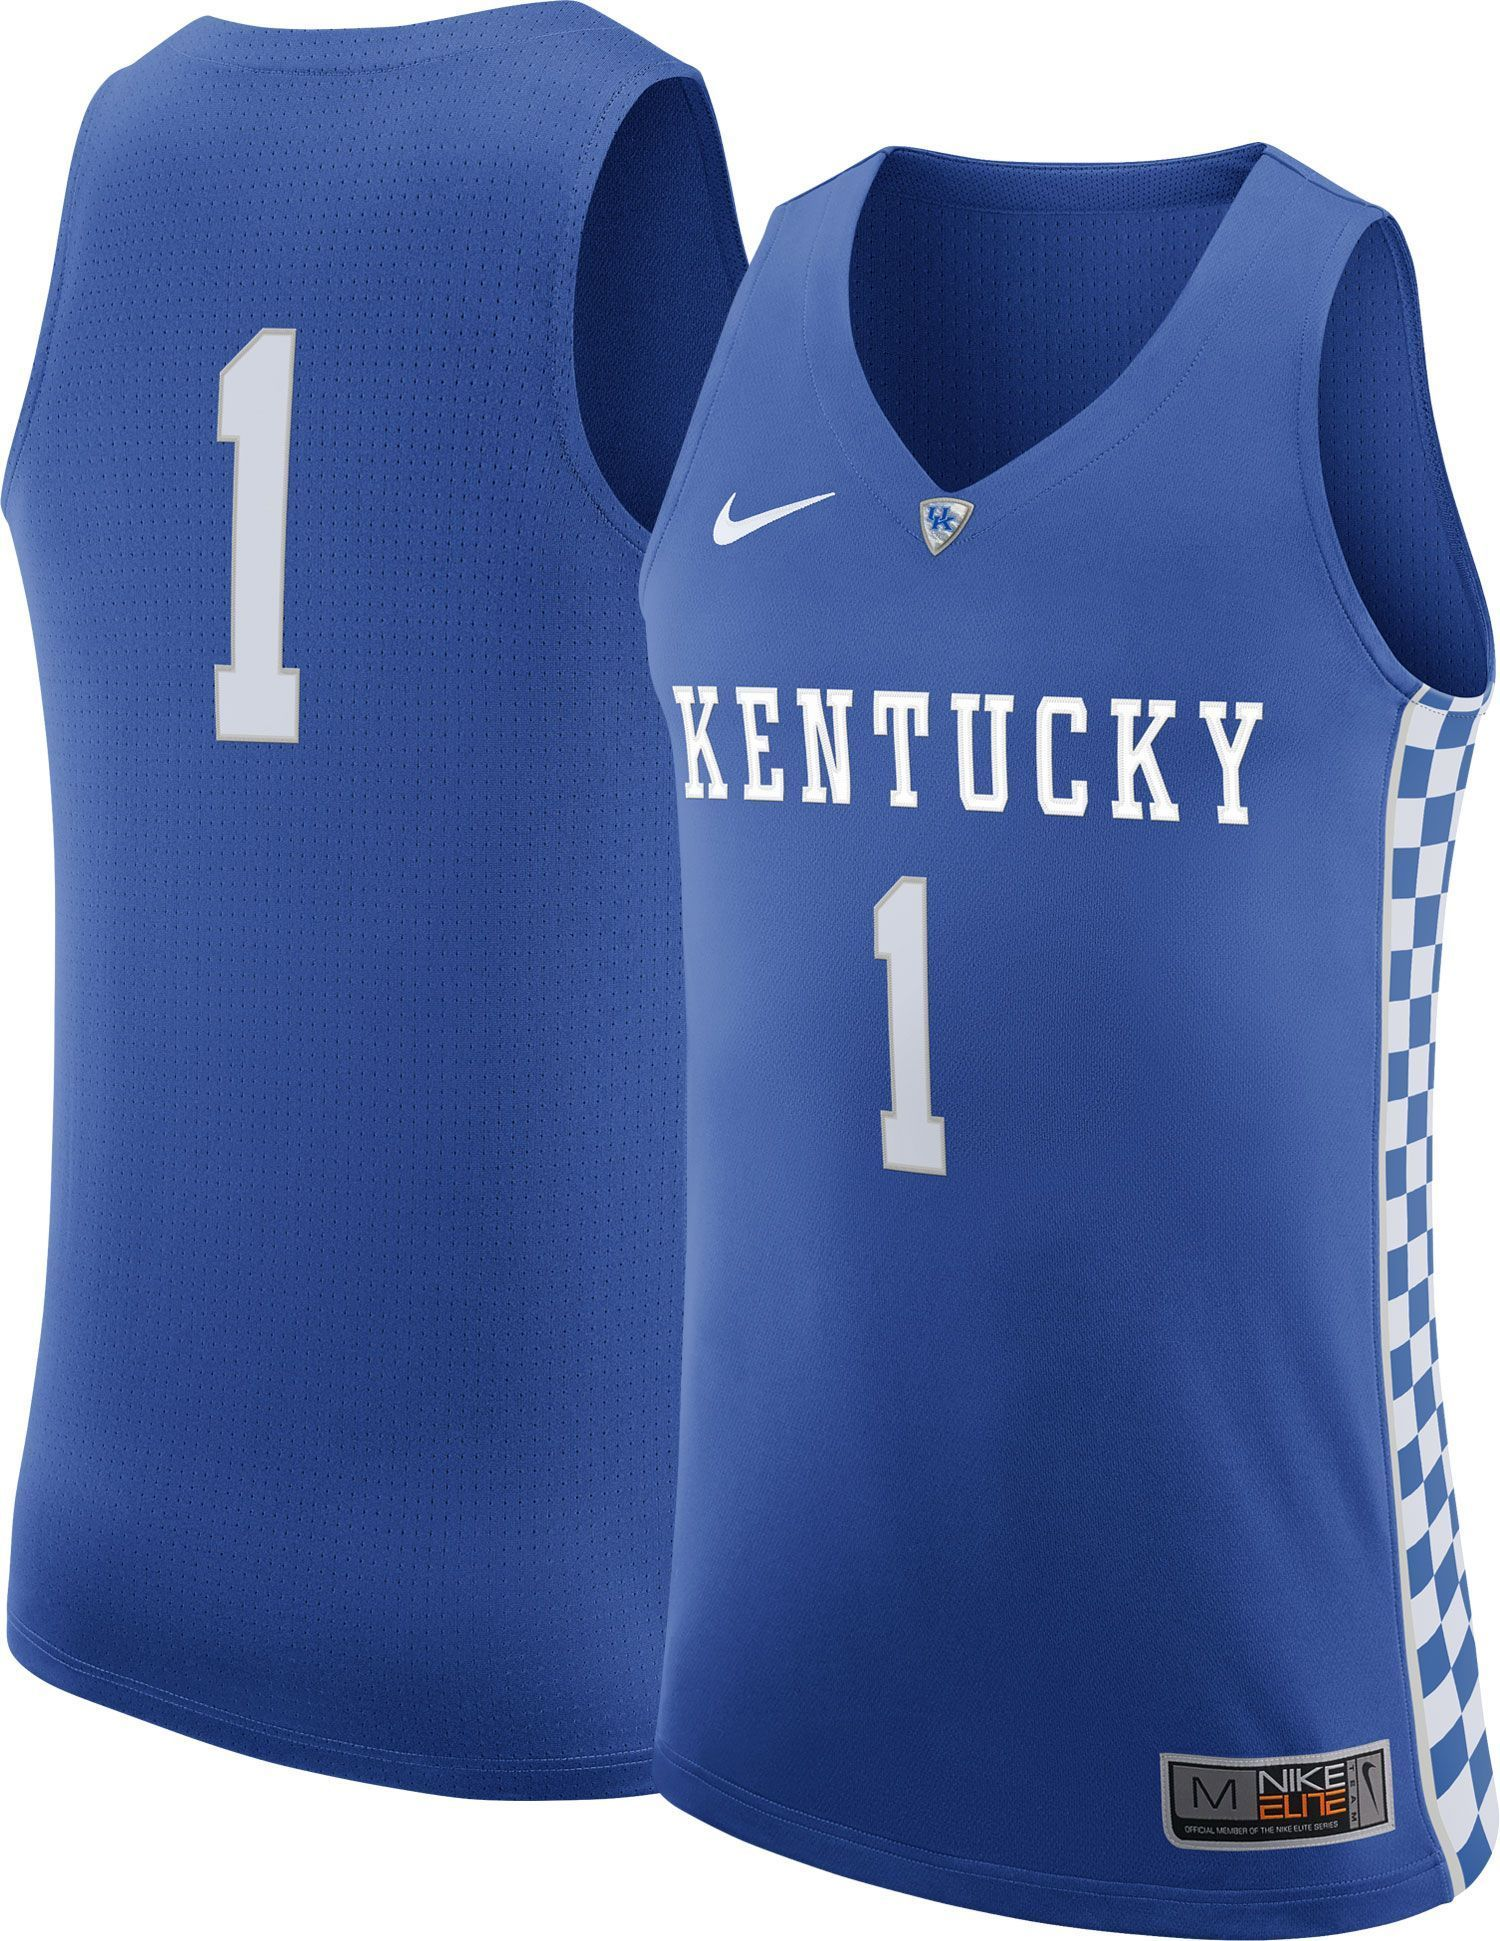 check out 6fc55 5b2ad Nike Men's Kentucky Wildcats #1 Blue Authentic Elite ...